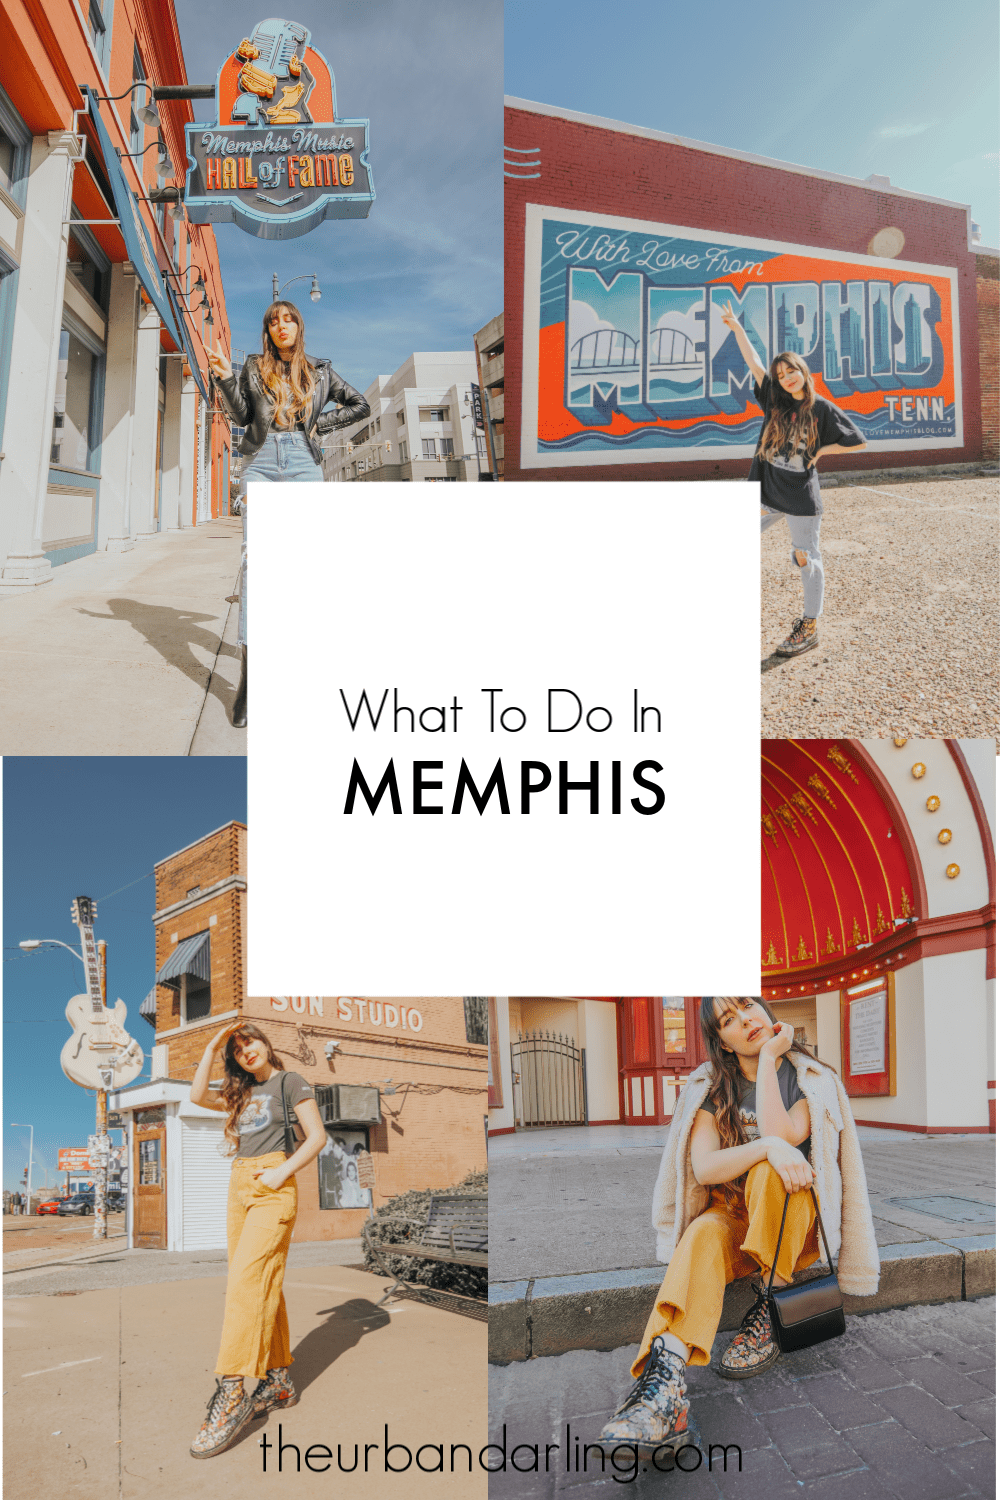 Sun Studio, Beale Street, New Daisy Theatre, Old Daisy Theatre, South Main Arts District, With Love From Memphis Sign, Graceland, National Civil Rights Museum, Arcade Restaurant, Memphis Music Hall of Fame, Edge Alley, Memphis, Tennessee, Memphis Travel Guide, travel guide, The Best Instagram Spots in Memphis, travel, The Urban Darling, fashion, boho fashion, bohemian.